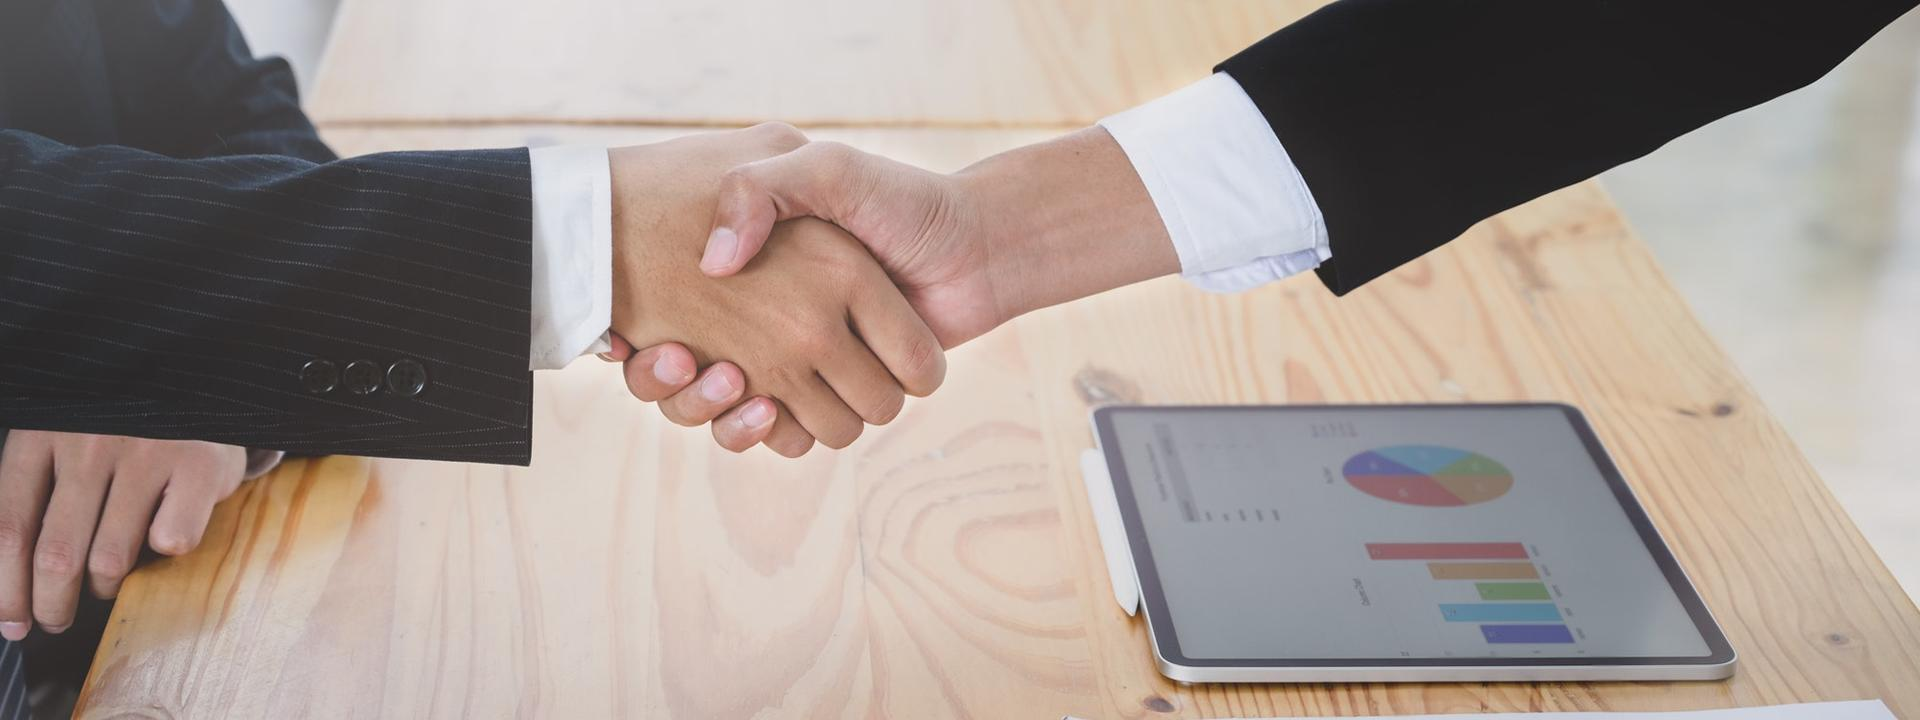 Hand shake with computer on the table